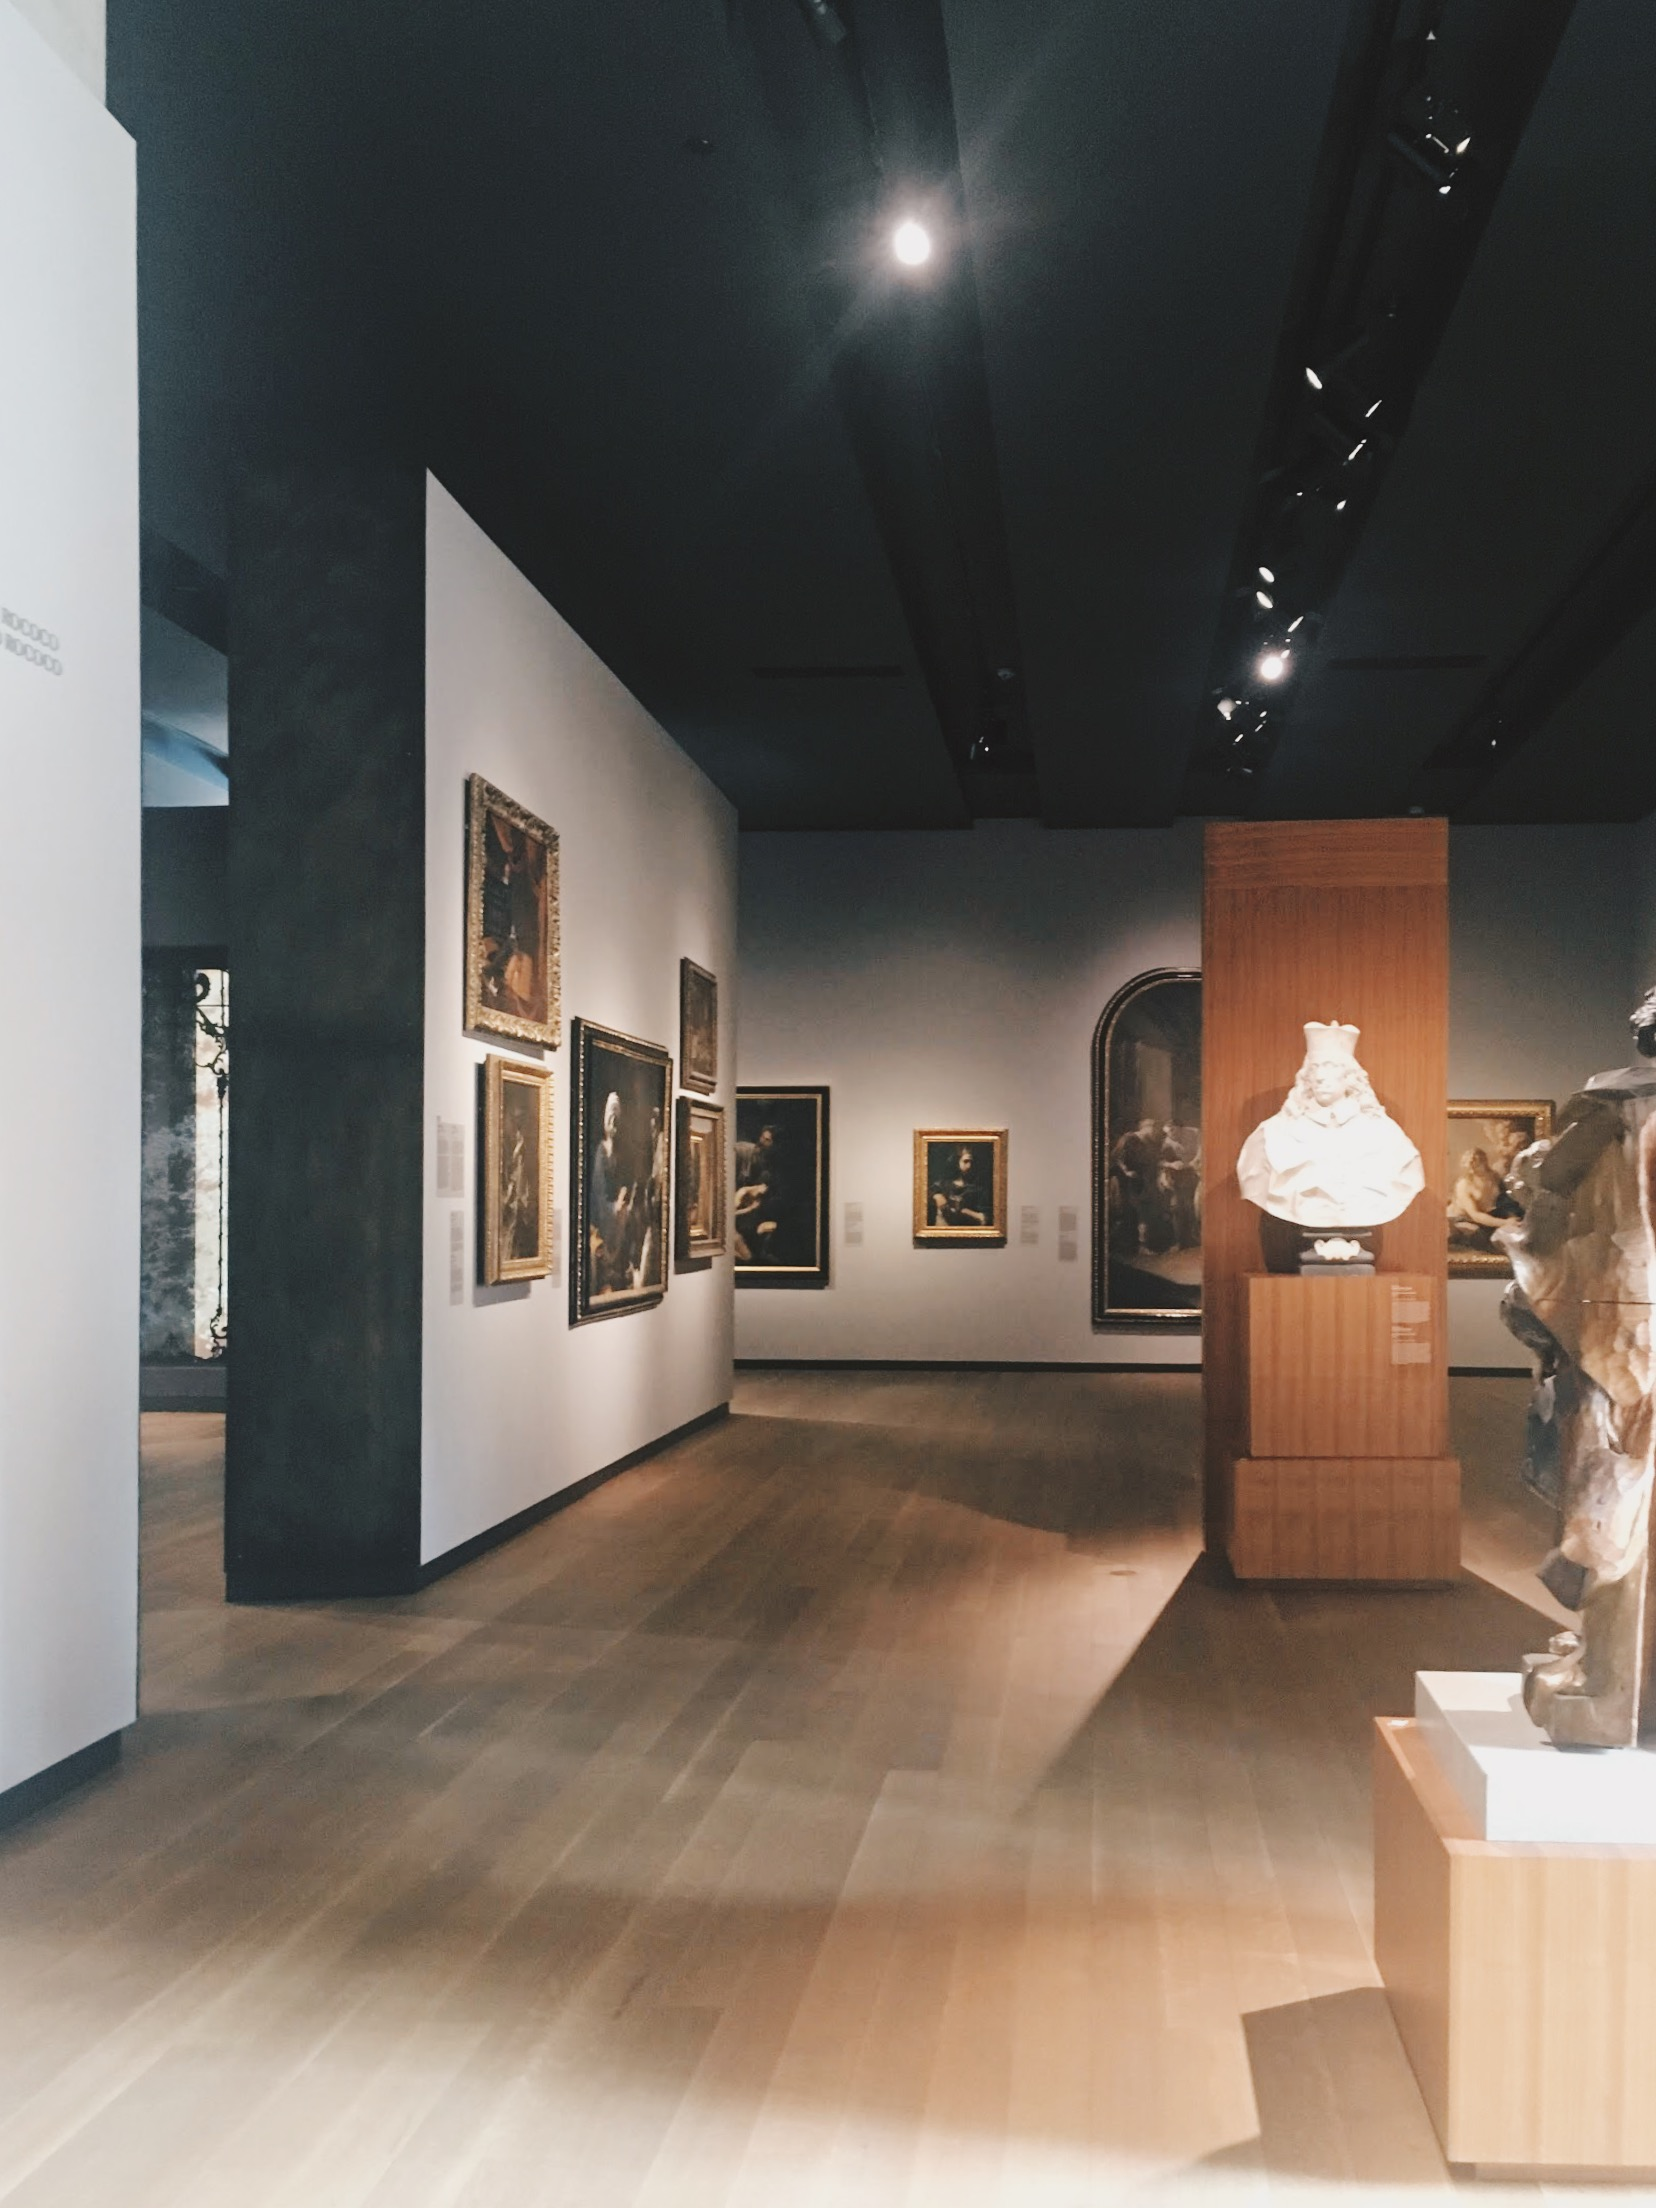 Musée des Beaux Arts Montreal M.A. McCuen The Attic on Eighth Montreal Guide.JPG